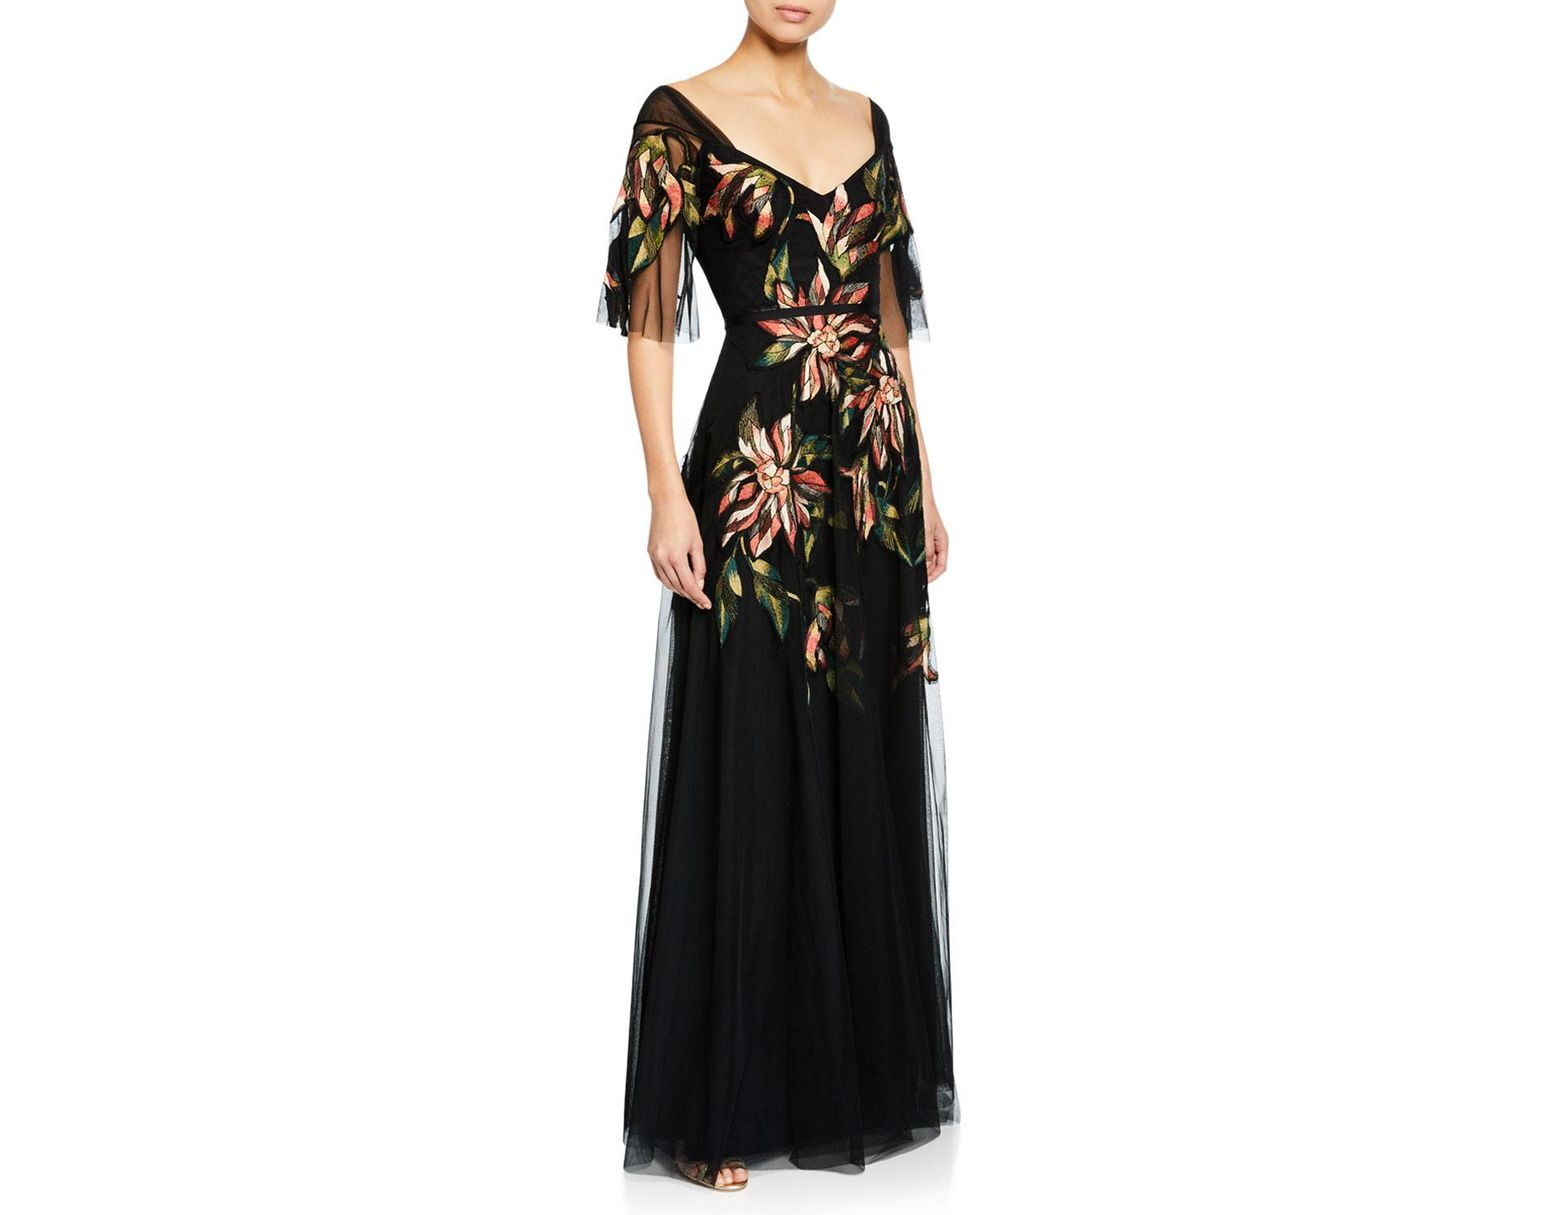 38713f6c Marchesa notte V-neck Half-sleeve Floral Embroidered Tulle A-line Gown in  Black - Save 25% - Lyst